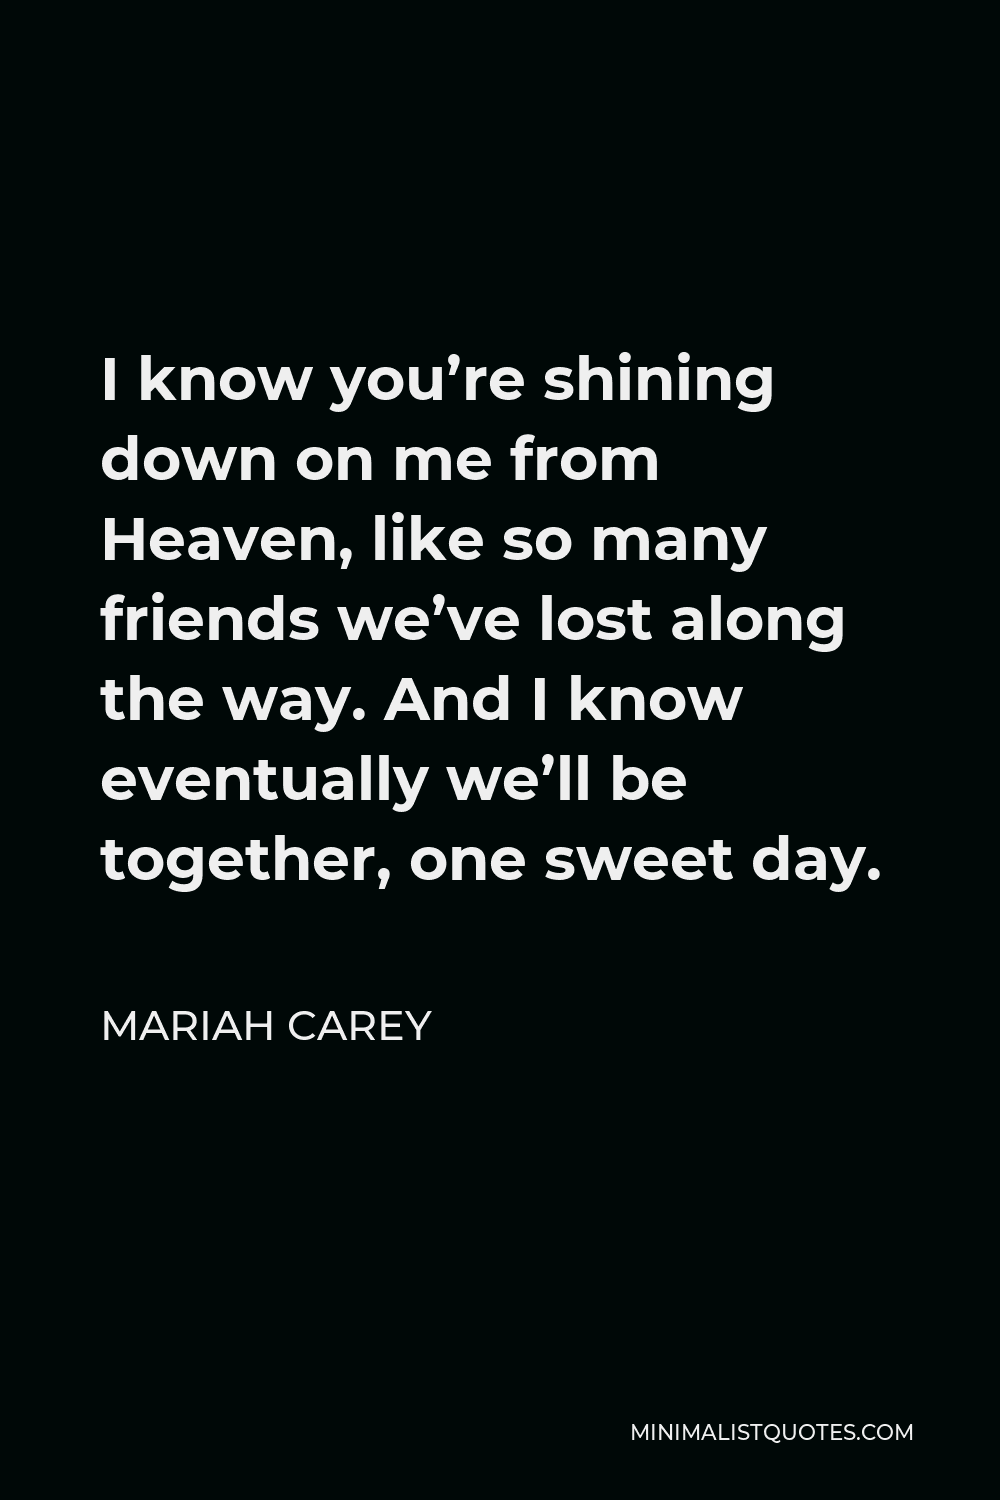 Mariah Carey Quote - I know you're shining down on me from Heaven, like so many friends we've lost along the way. And I know eventually we'll be together, one sweet day.